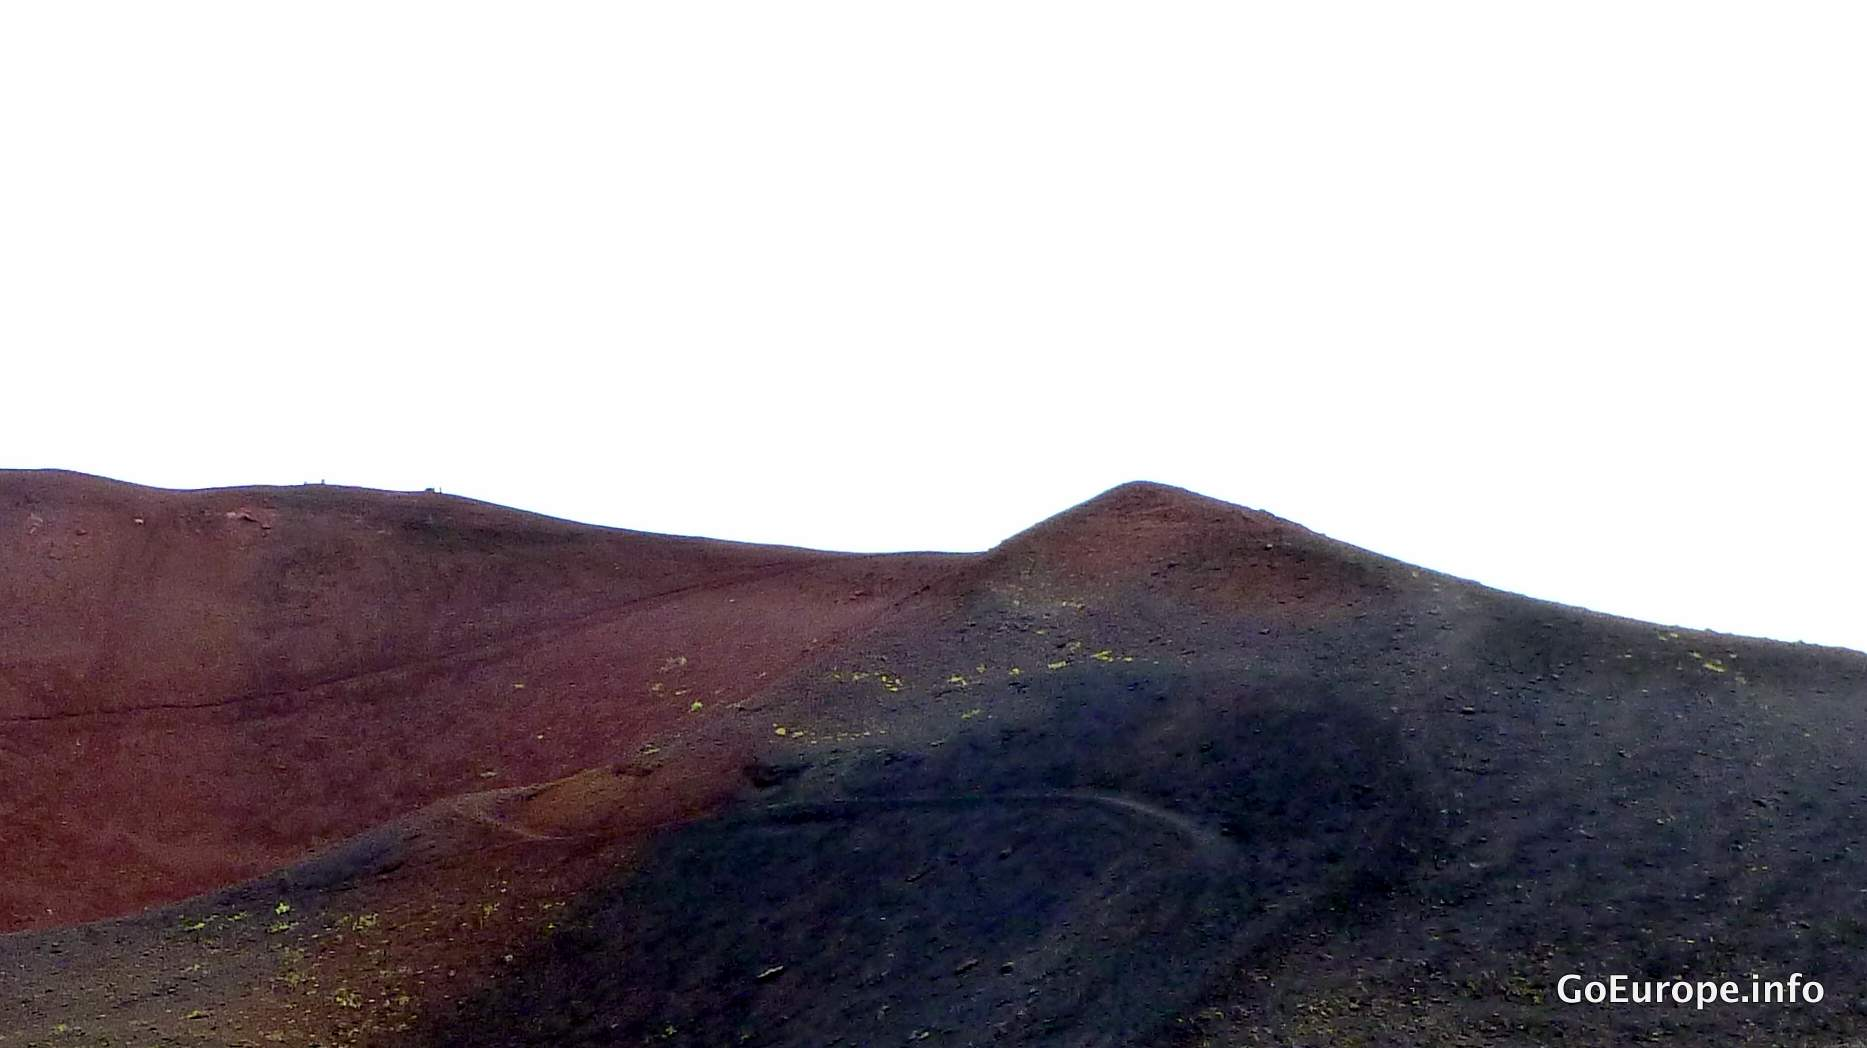 Top of the volcano.